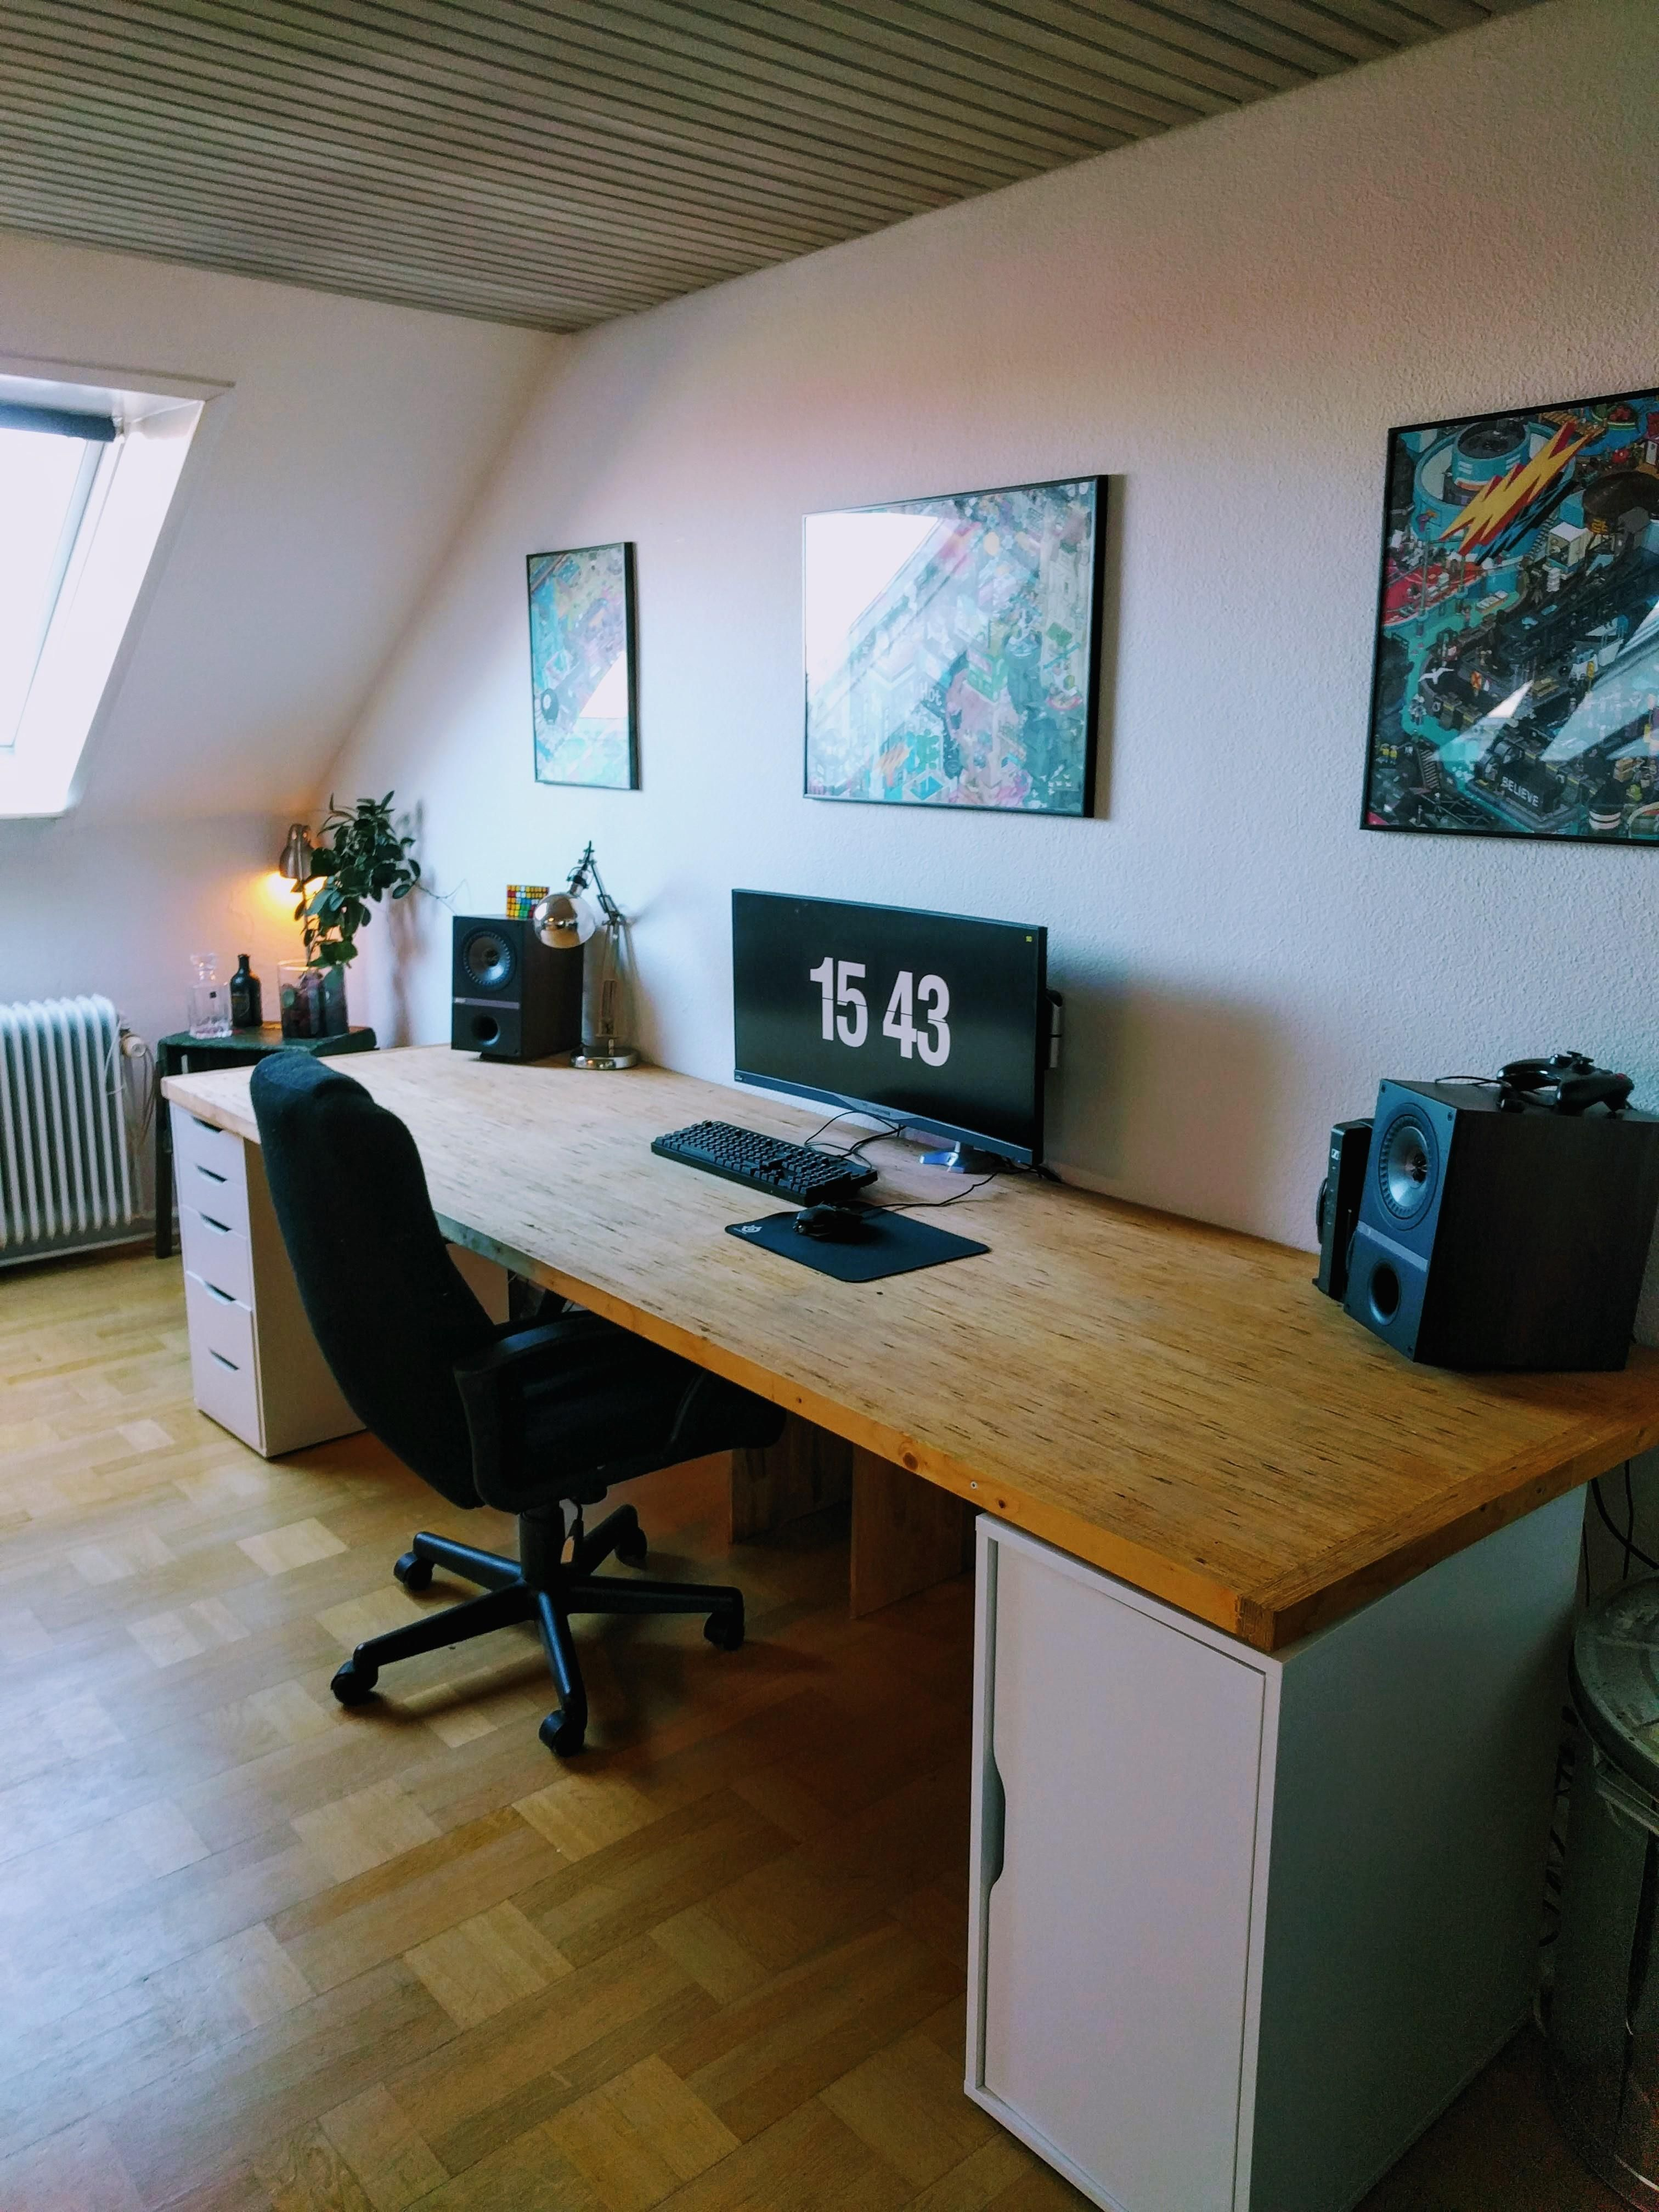 21 Epic Gaming Room Decoration Ideas Fancydecors